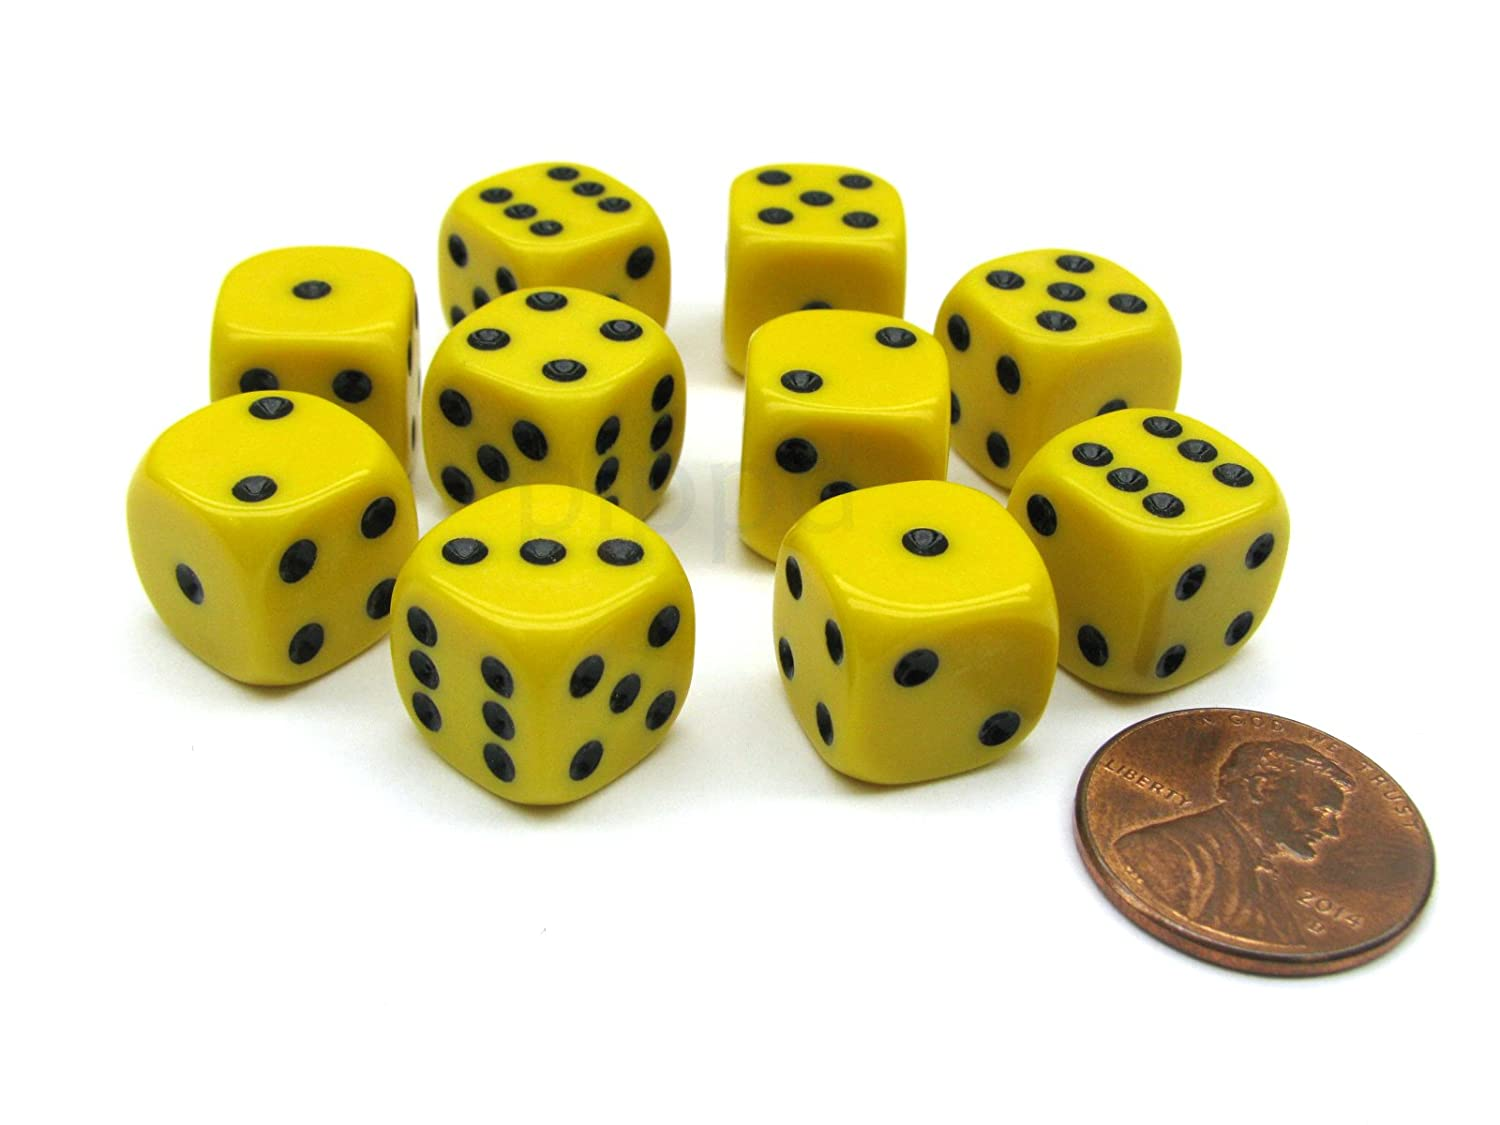 絶対一番安い Pack of 10 12mm - Round Edge 10 Opaque Small Dice B01HFJHEES - Yellow with Black Pips B01HFJHEES, GINZA LoveLove(銀座ラブラブ):87409652 --- arianechie.dominiotemporario.com